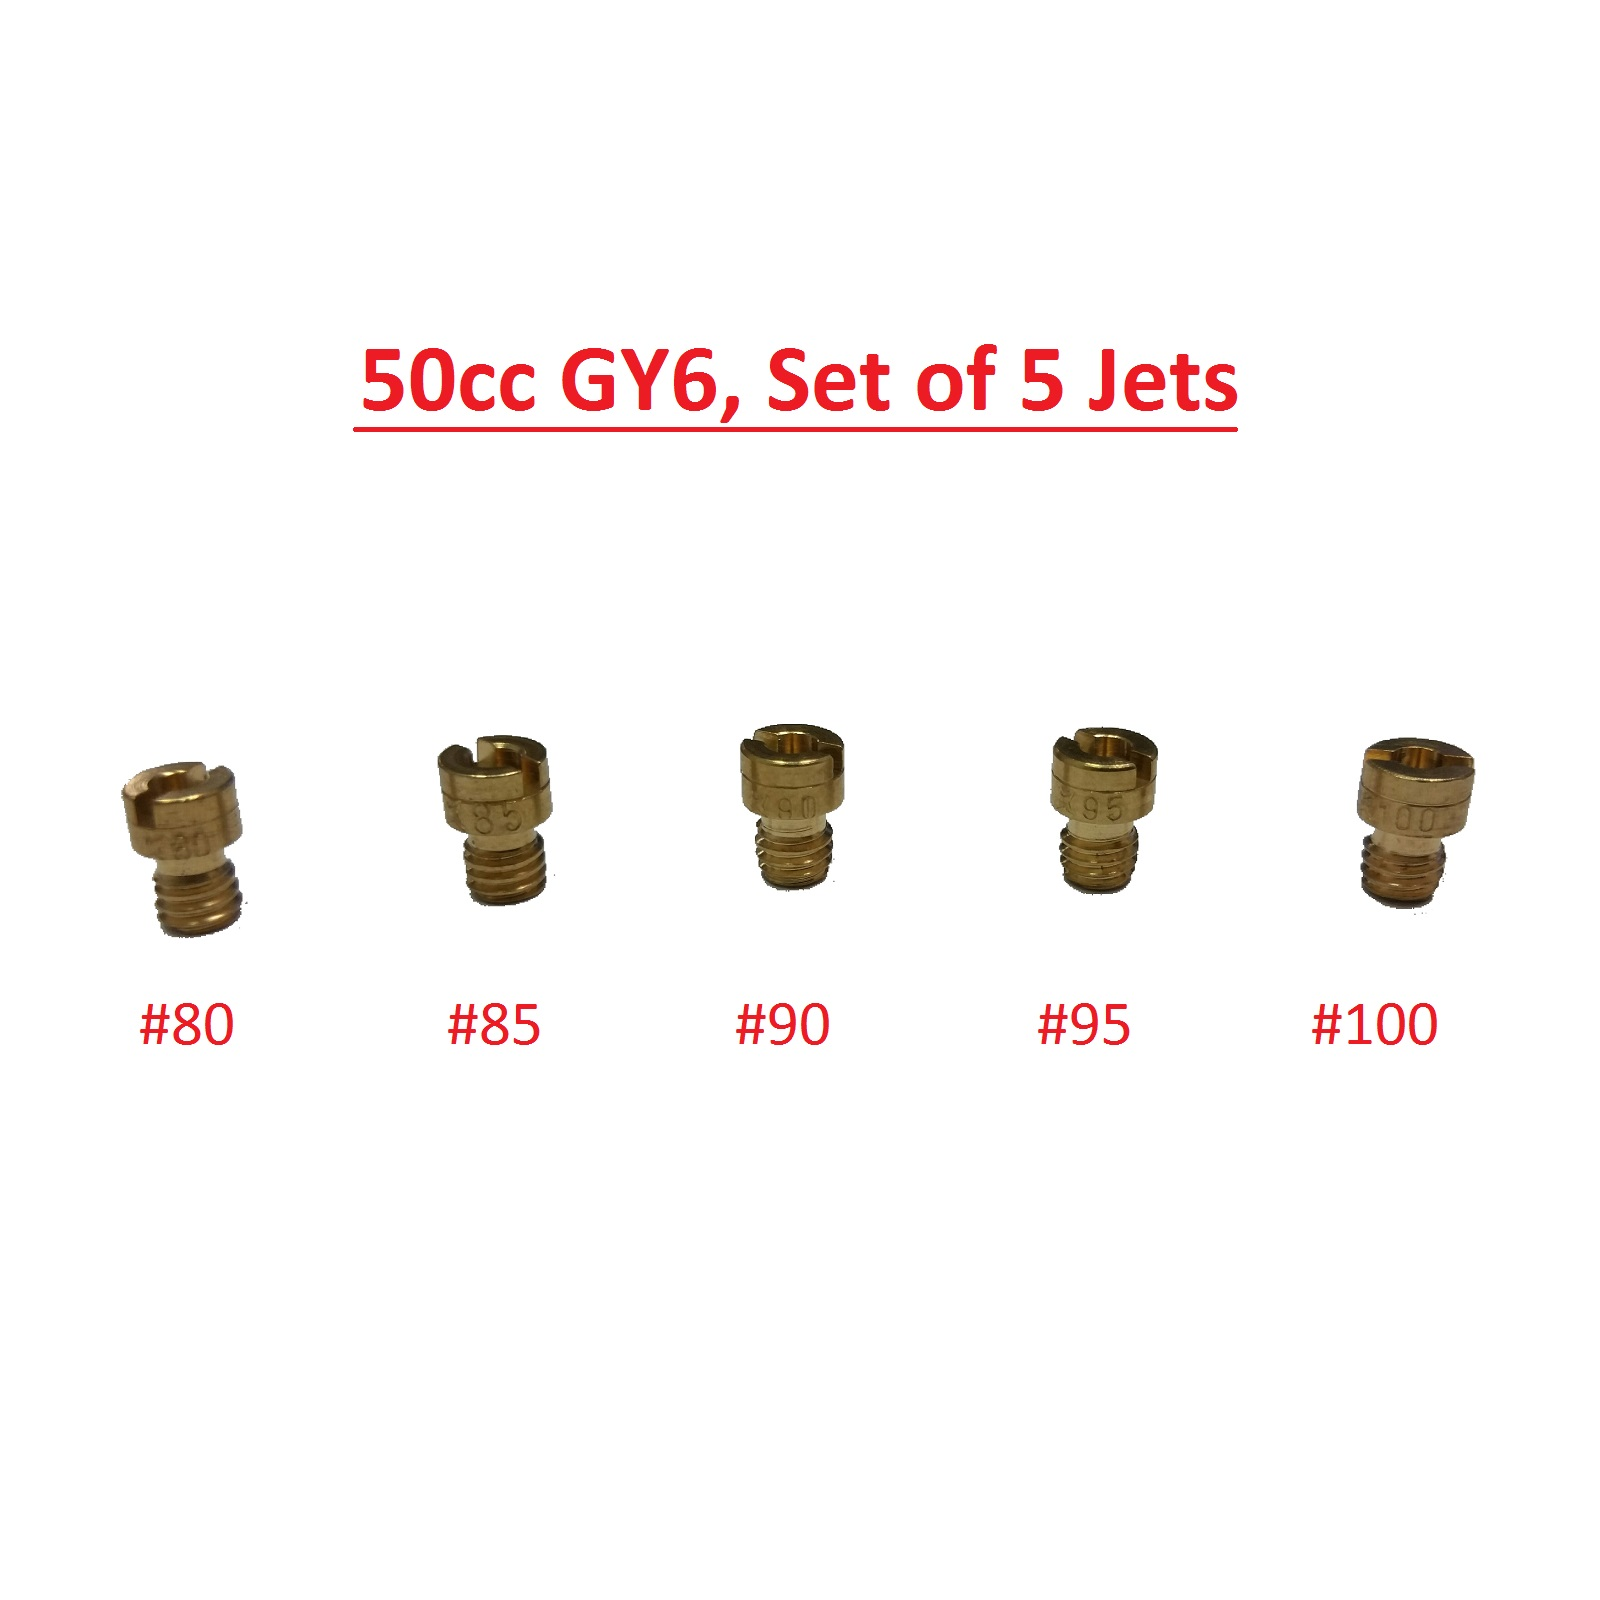 Main Jet 5pcs Set PD18 GY6 50:80, 85, 90, 95, 100